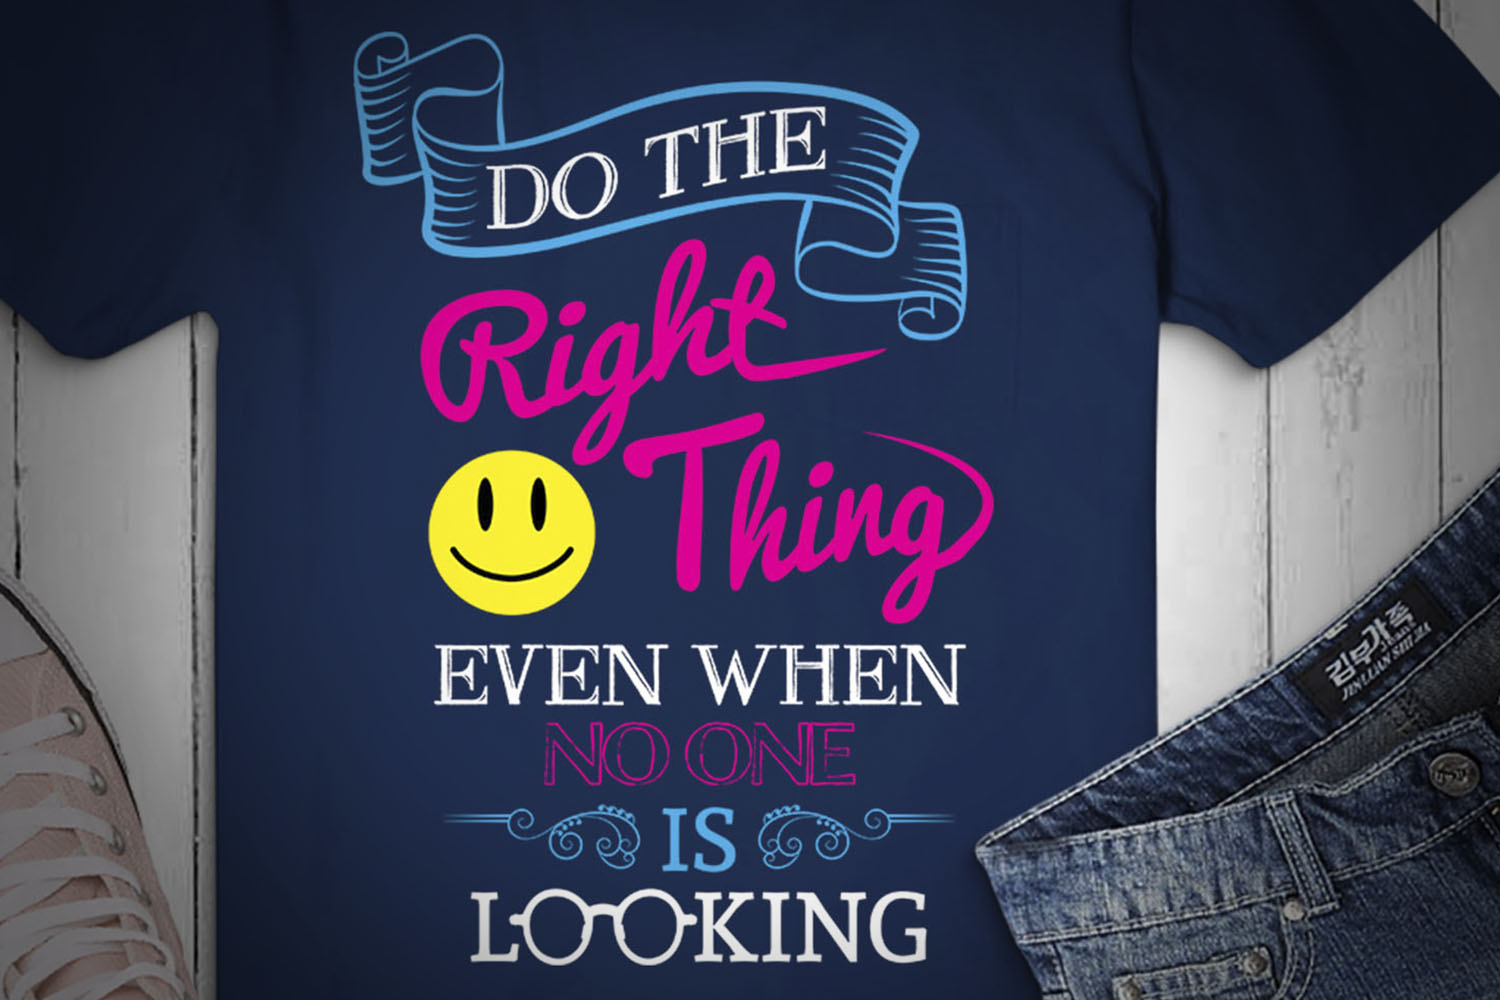 Do The Right Thing Even When No One Is Looking, SVG Design example image 2